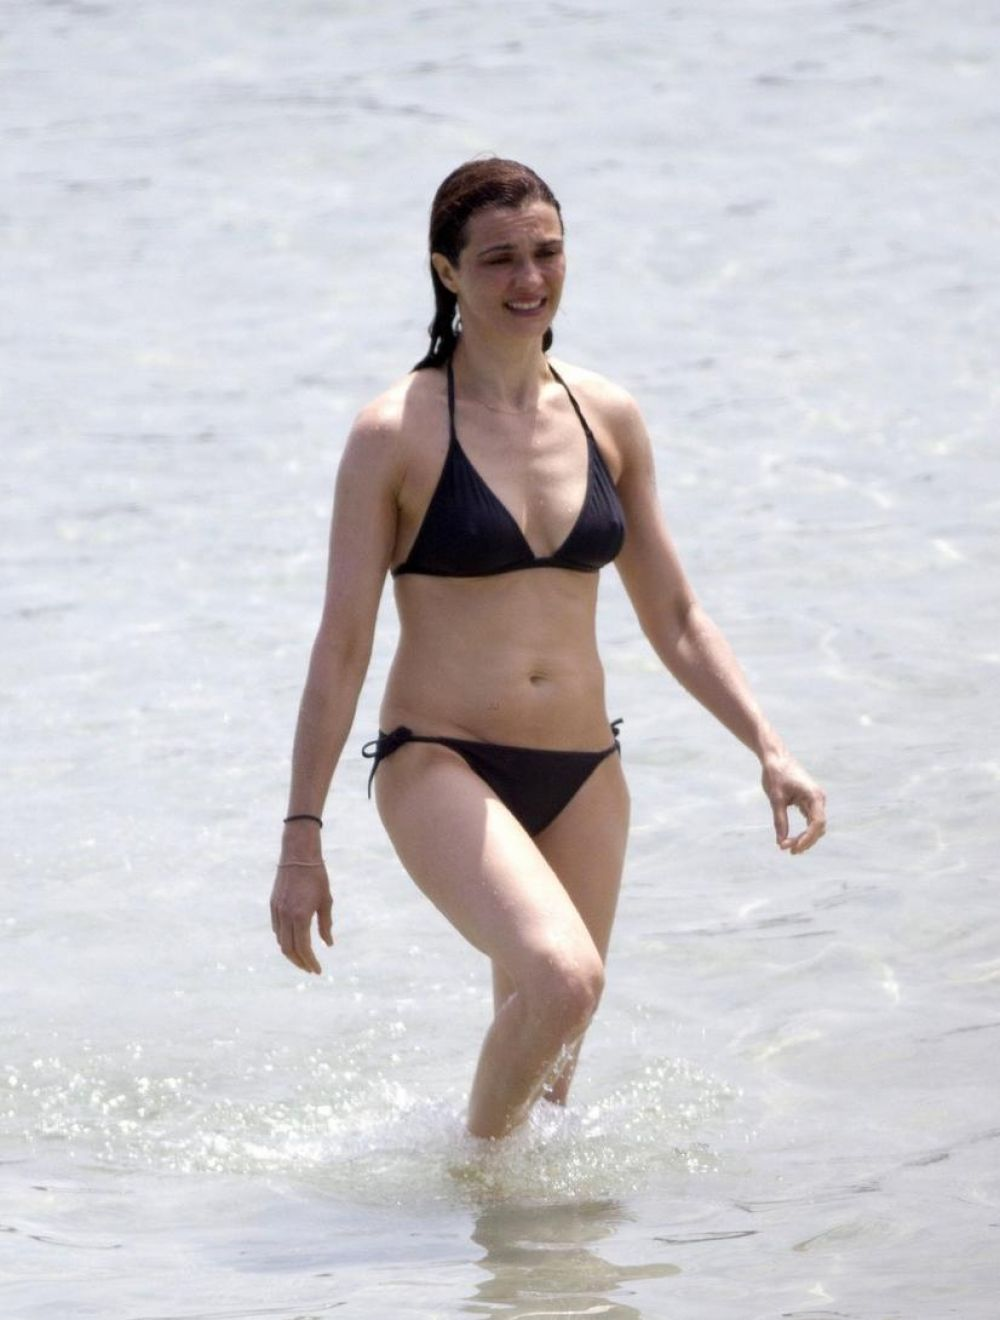 Leighton meester the beach in los angeles may,Kristin cavallari uncommon james pop up event in west hollywood Sex clip Alice goodwin naked,Julissa neal